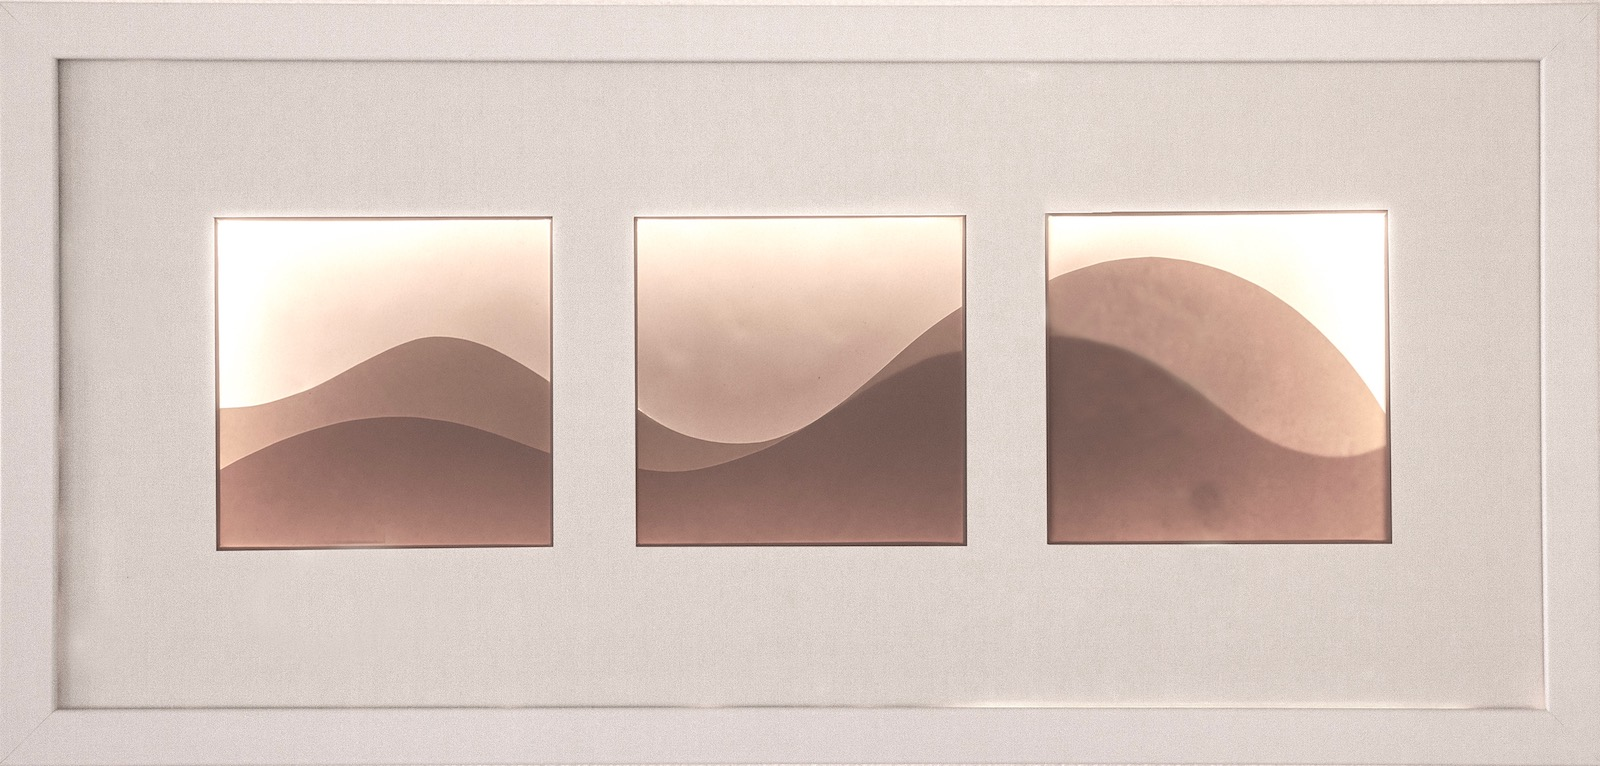 Backlit image consisting of three windows with abstract wave shapes spanning across